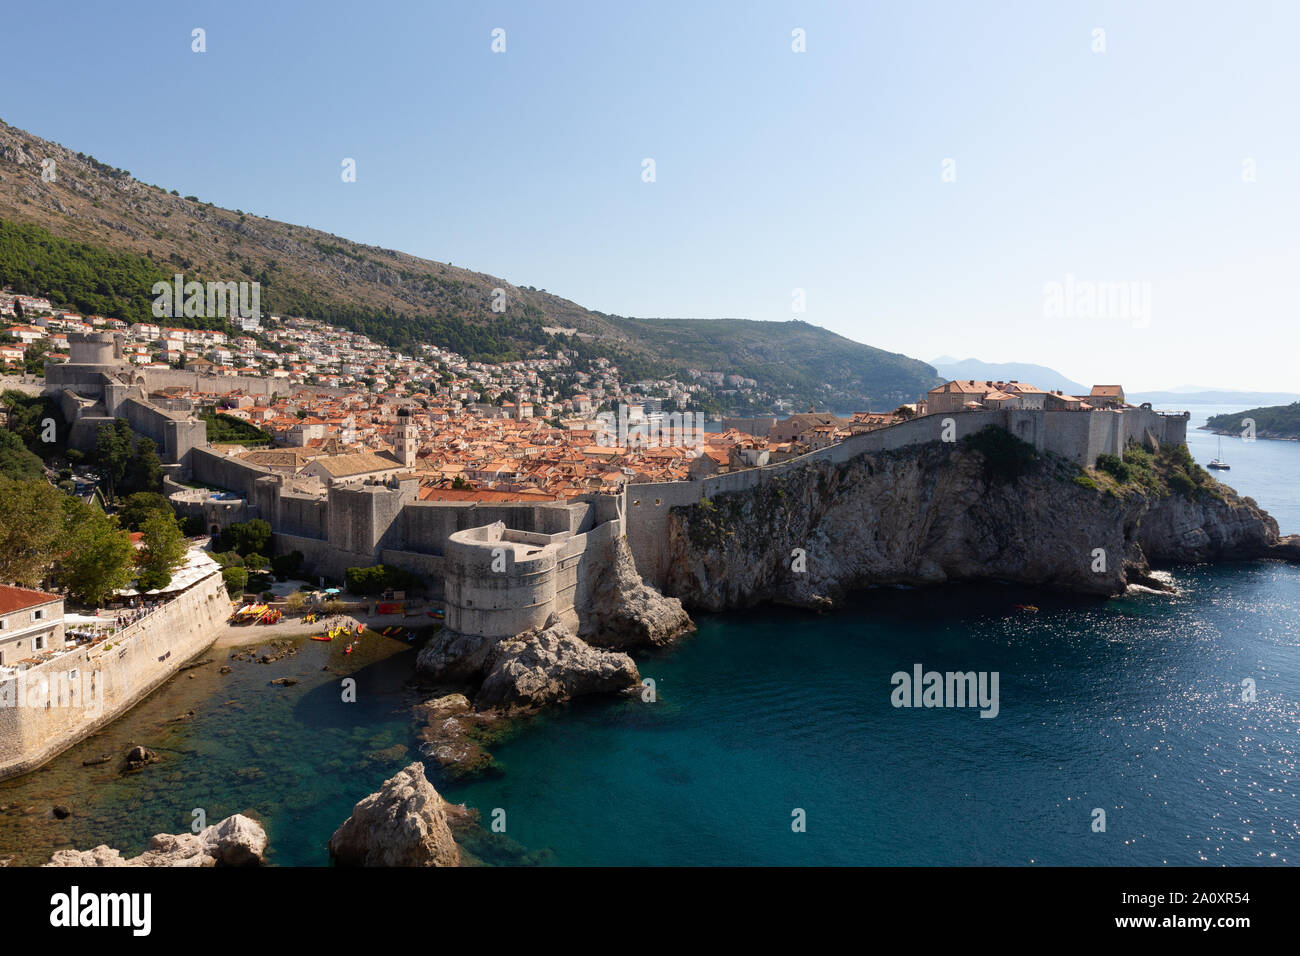 Dubrovnik city walls - a view of Dubrovnik old town and city wall, UNESCO World Heritage site, from Fort Lovrijenac; Dubrovnik Croatia Europe Stock Photo